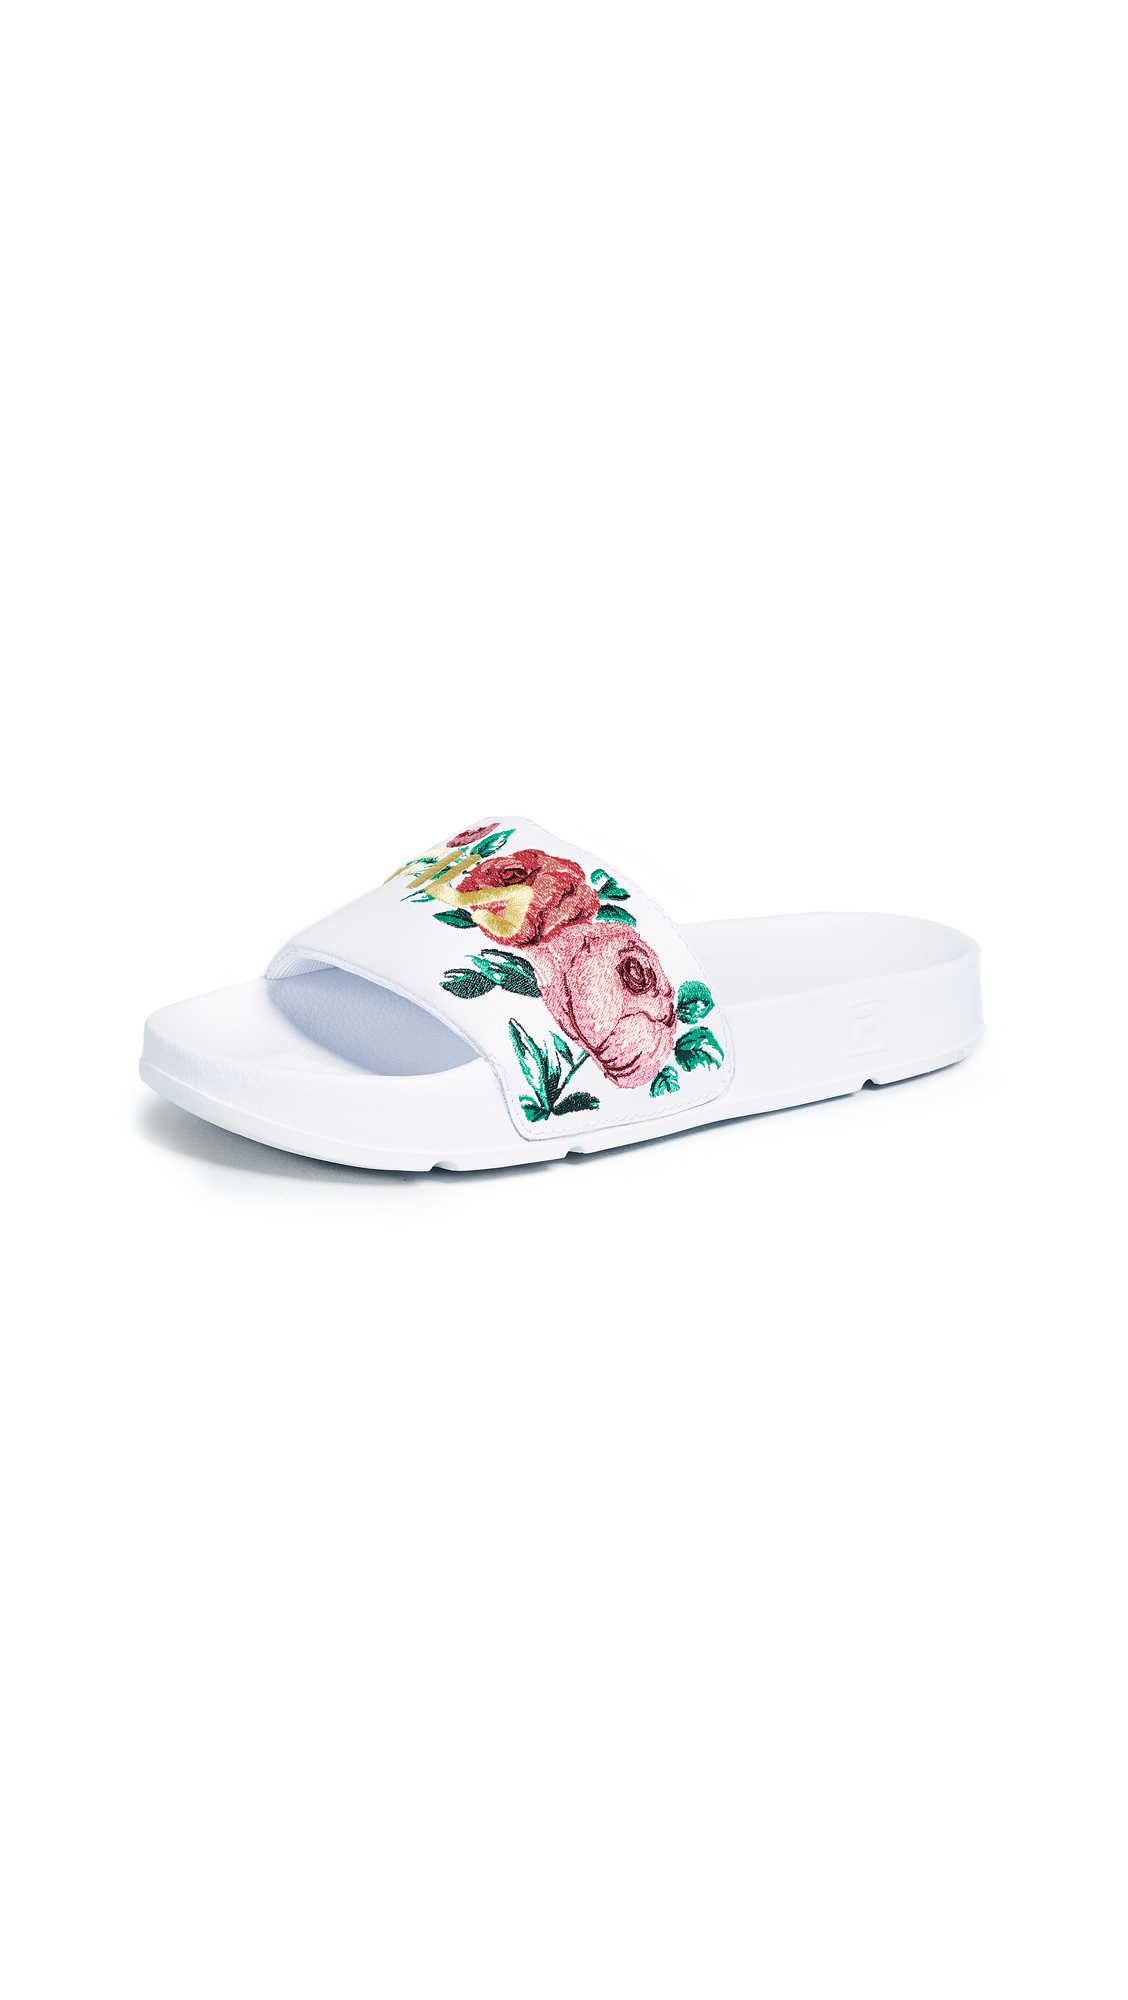 Fila Drifter Embroidery Slides - White/Desert Flower/Jelly Bean